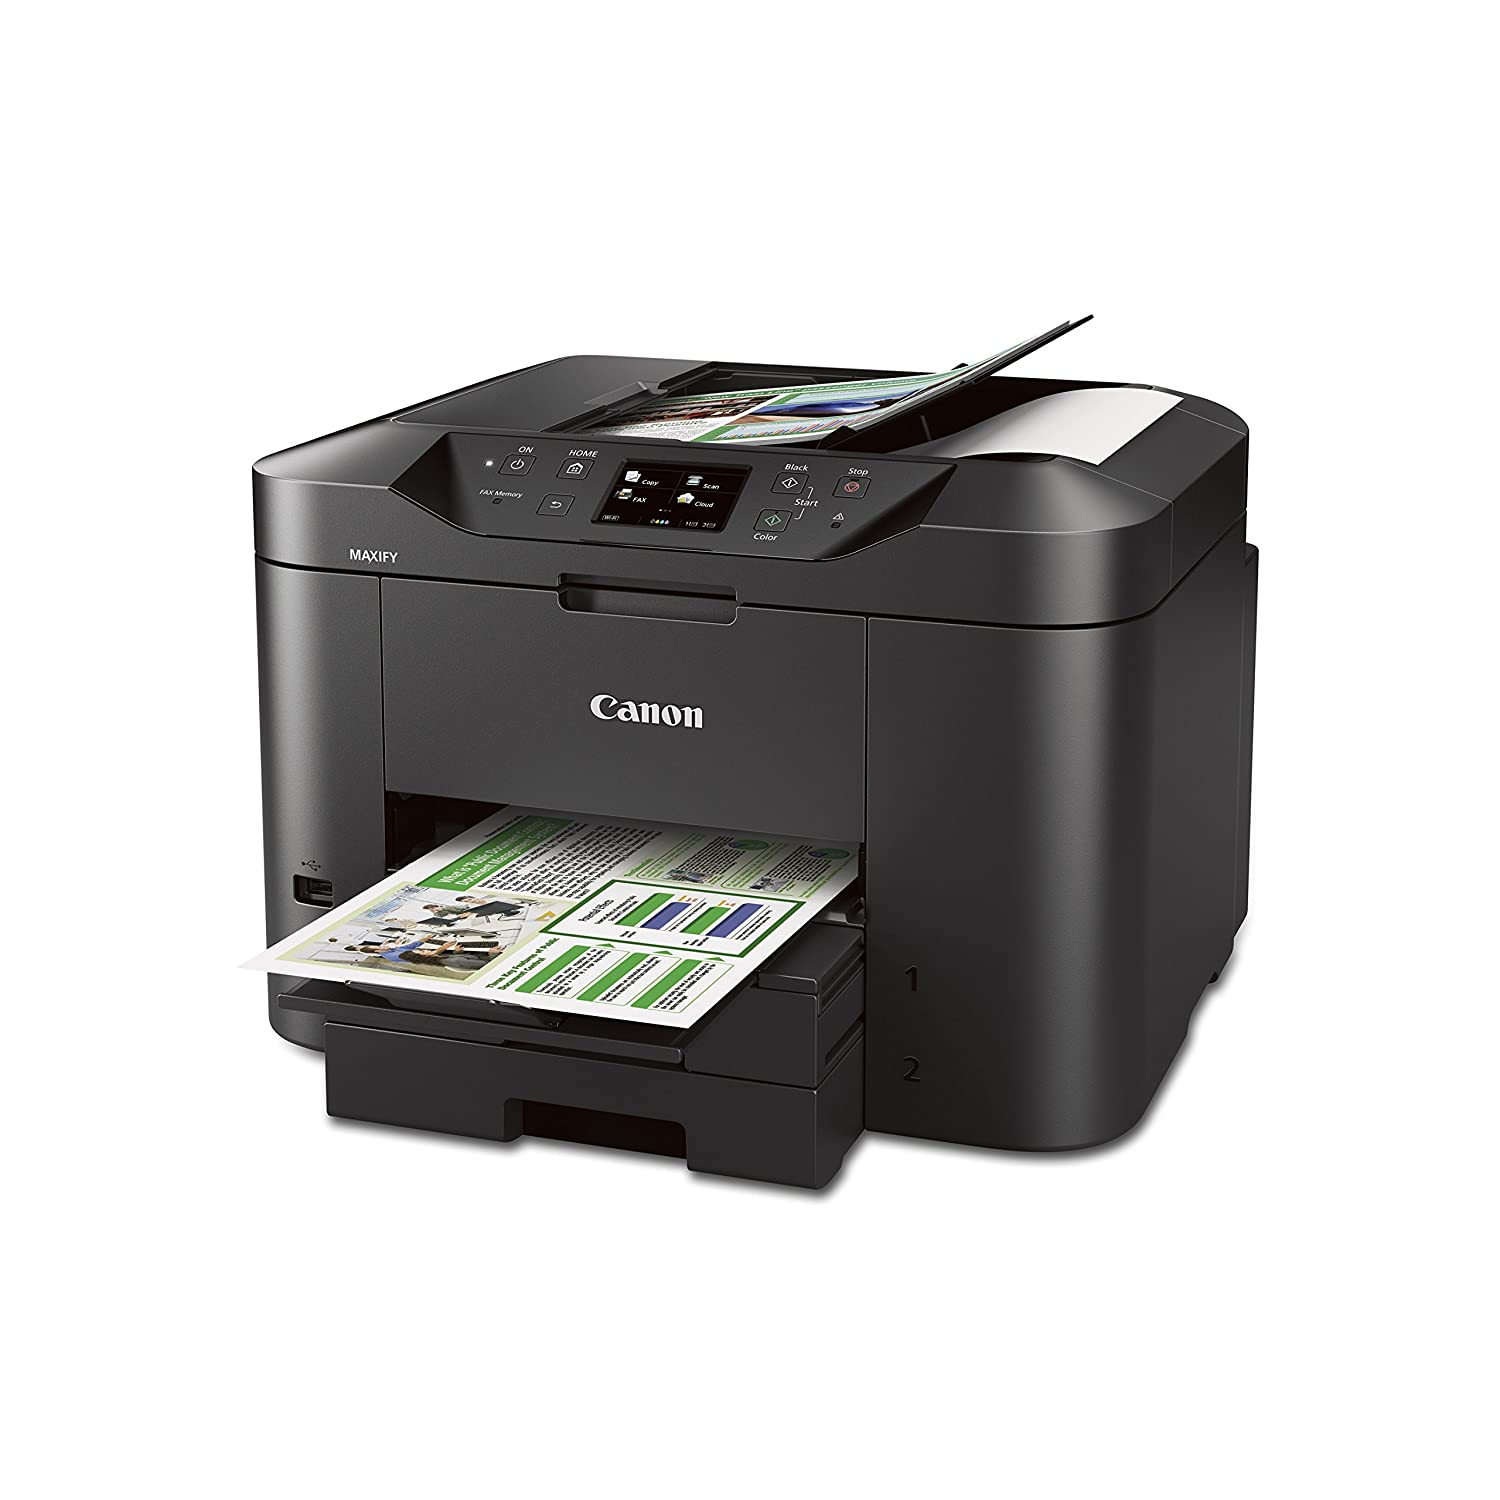 She is dating a gangster pdf printer